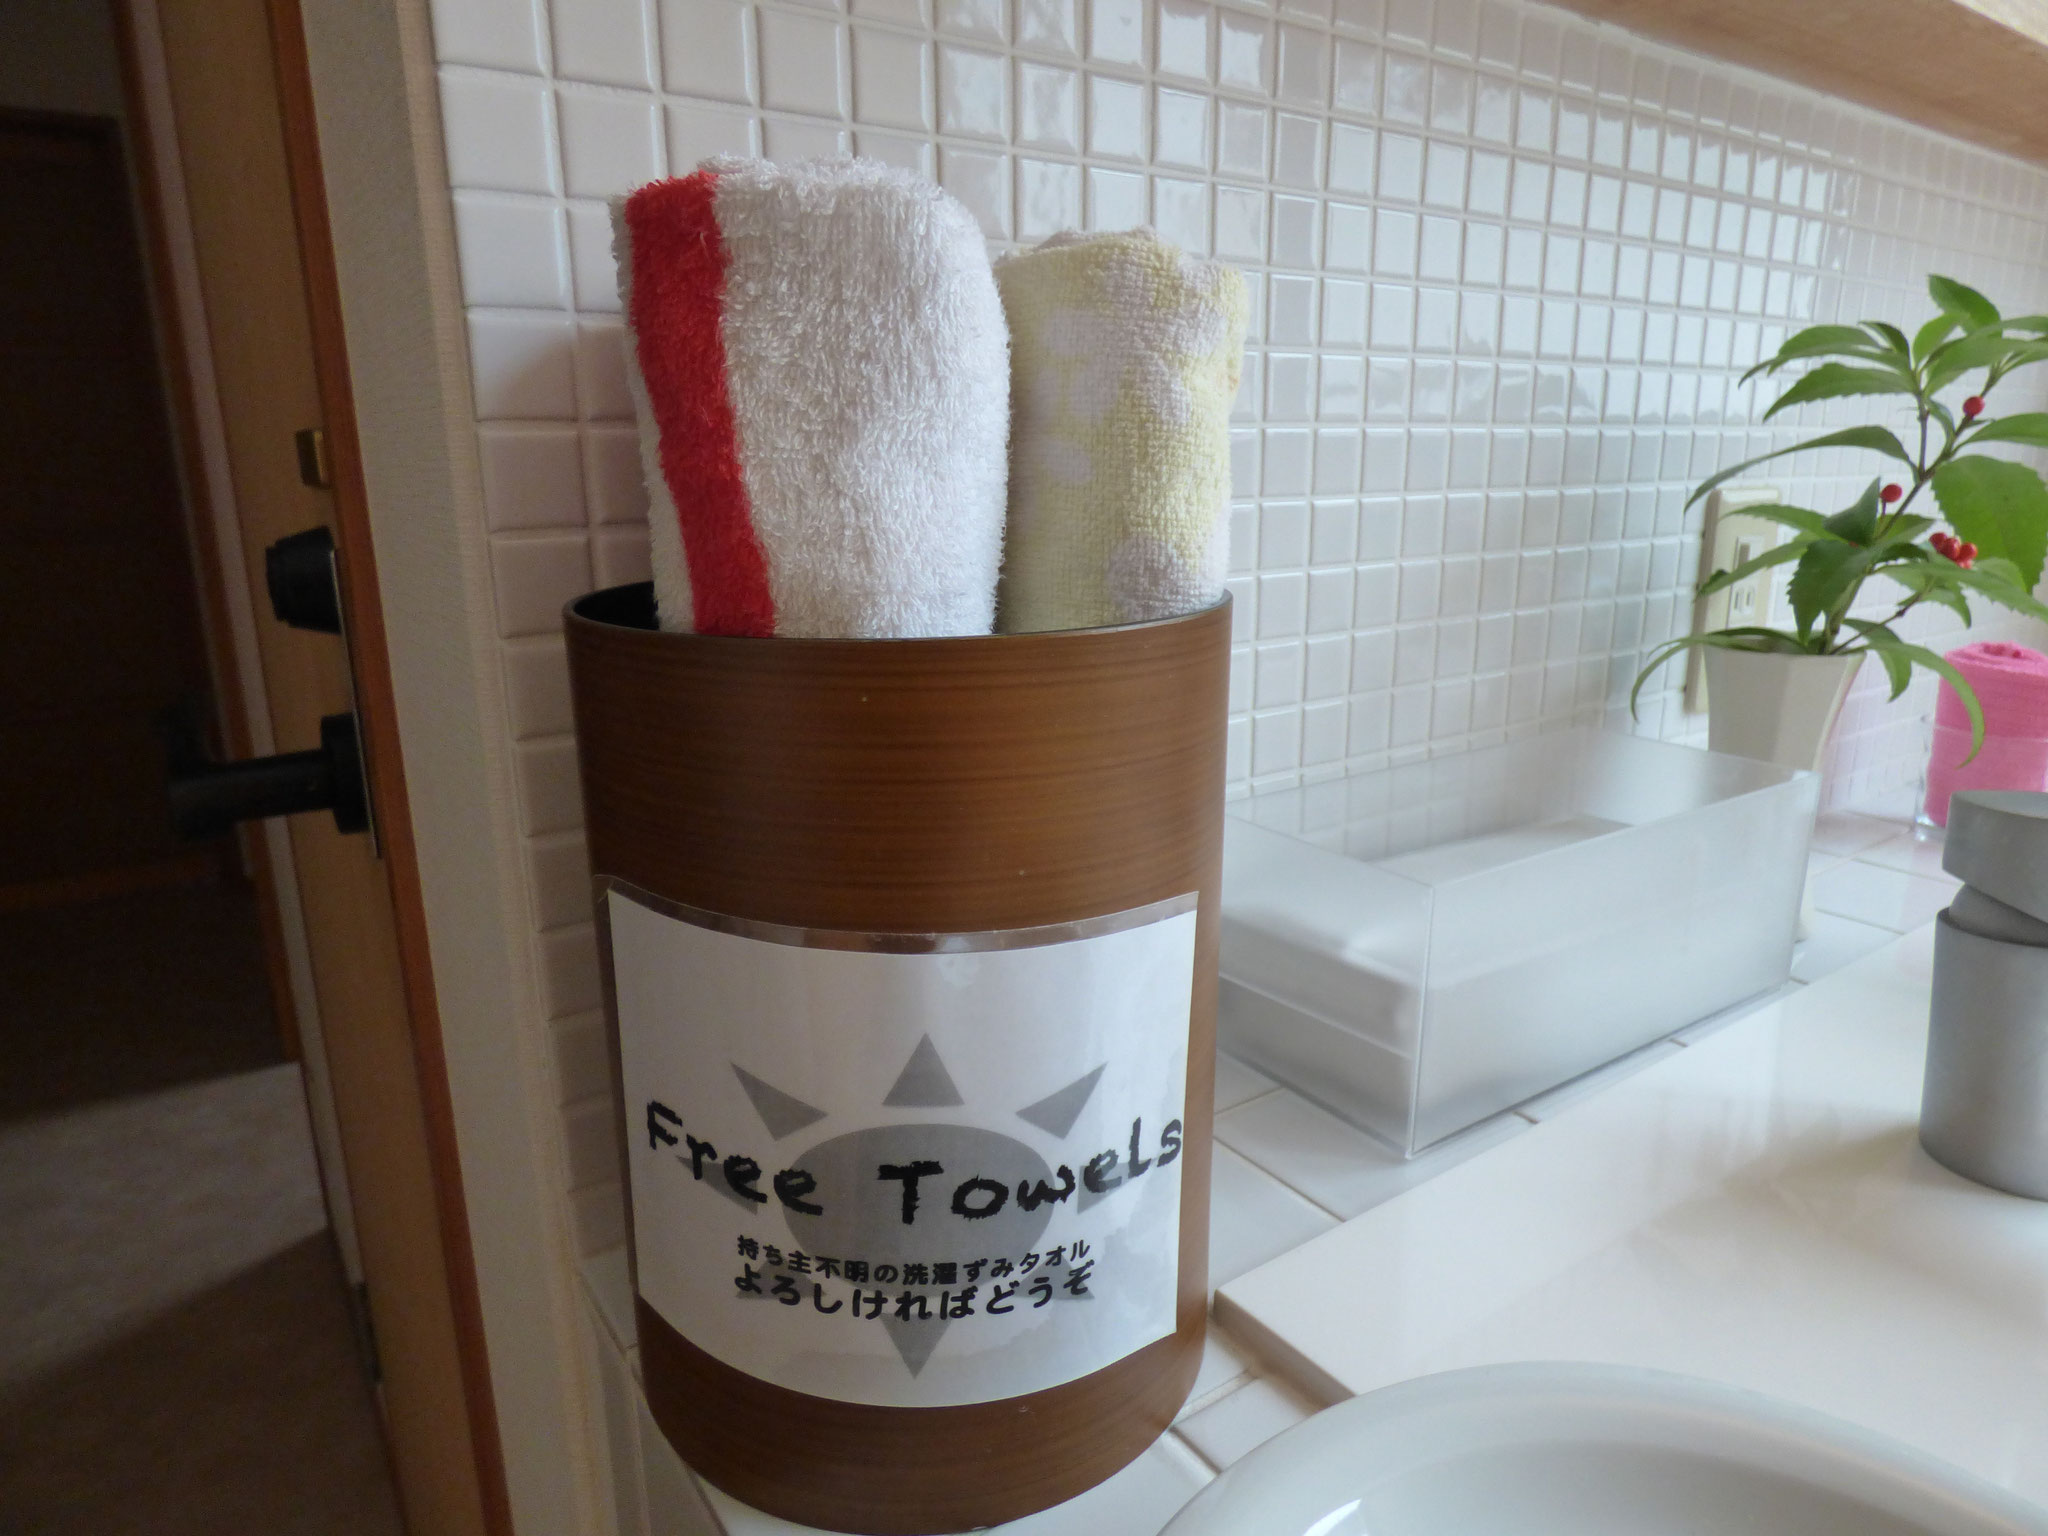 Face towels free